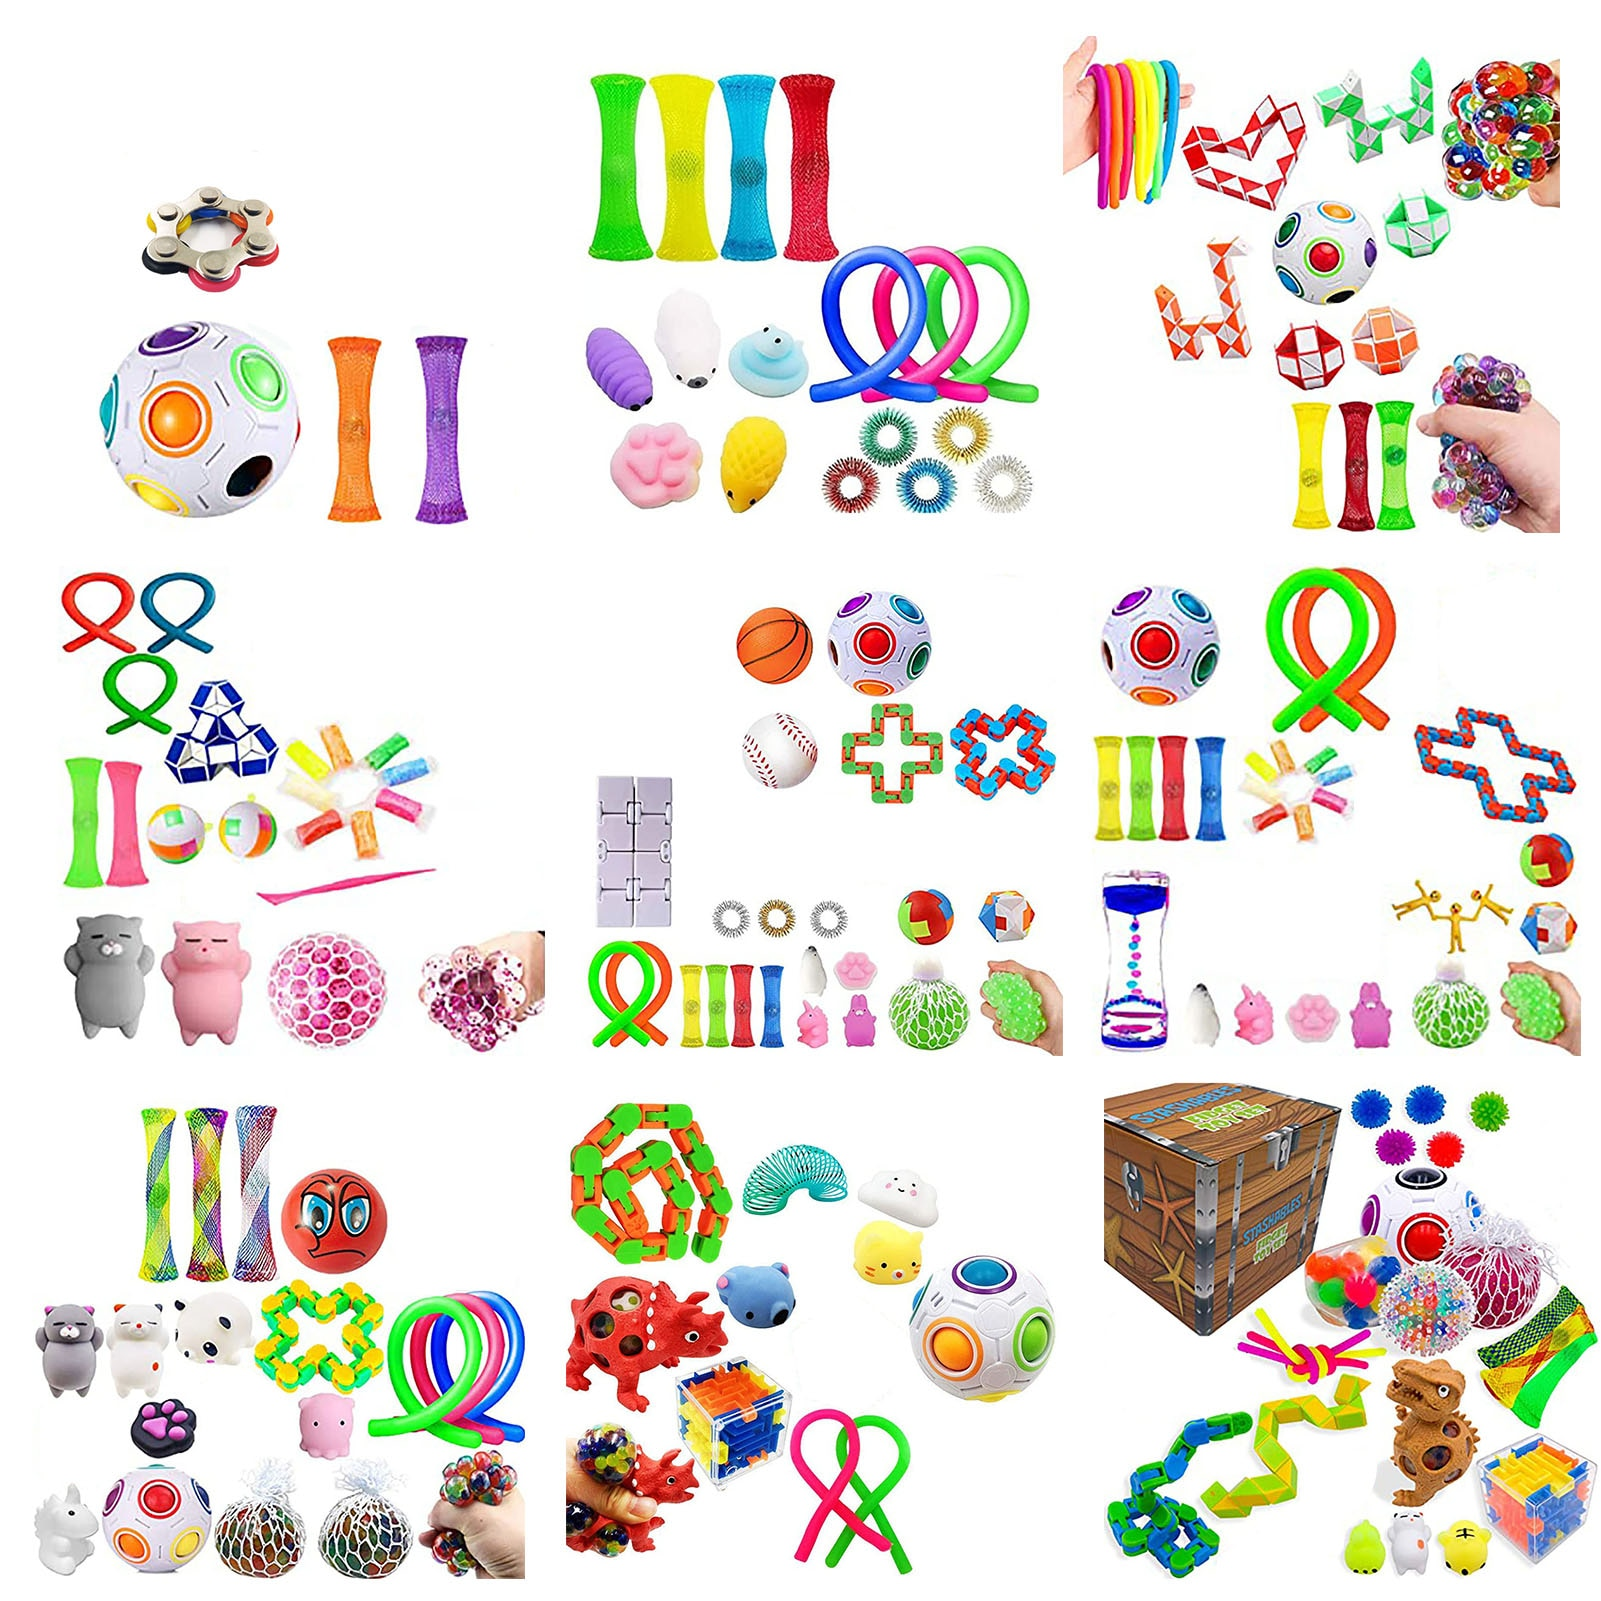 Sensory Fidget Toy Set 9 Sets Stress Relief Squeeze Toys Football Noodle Rope Dinosaur Deformation Chain For Kids Adults enlarge